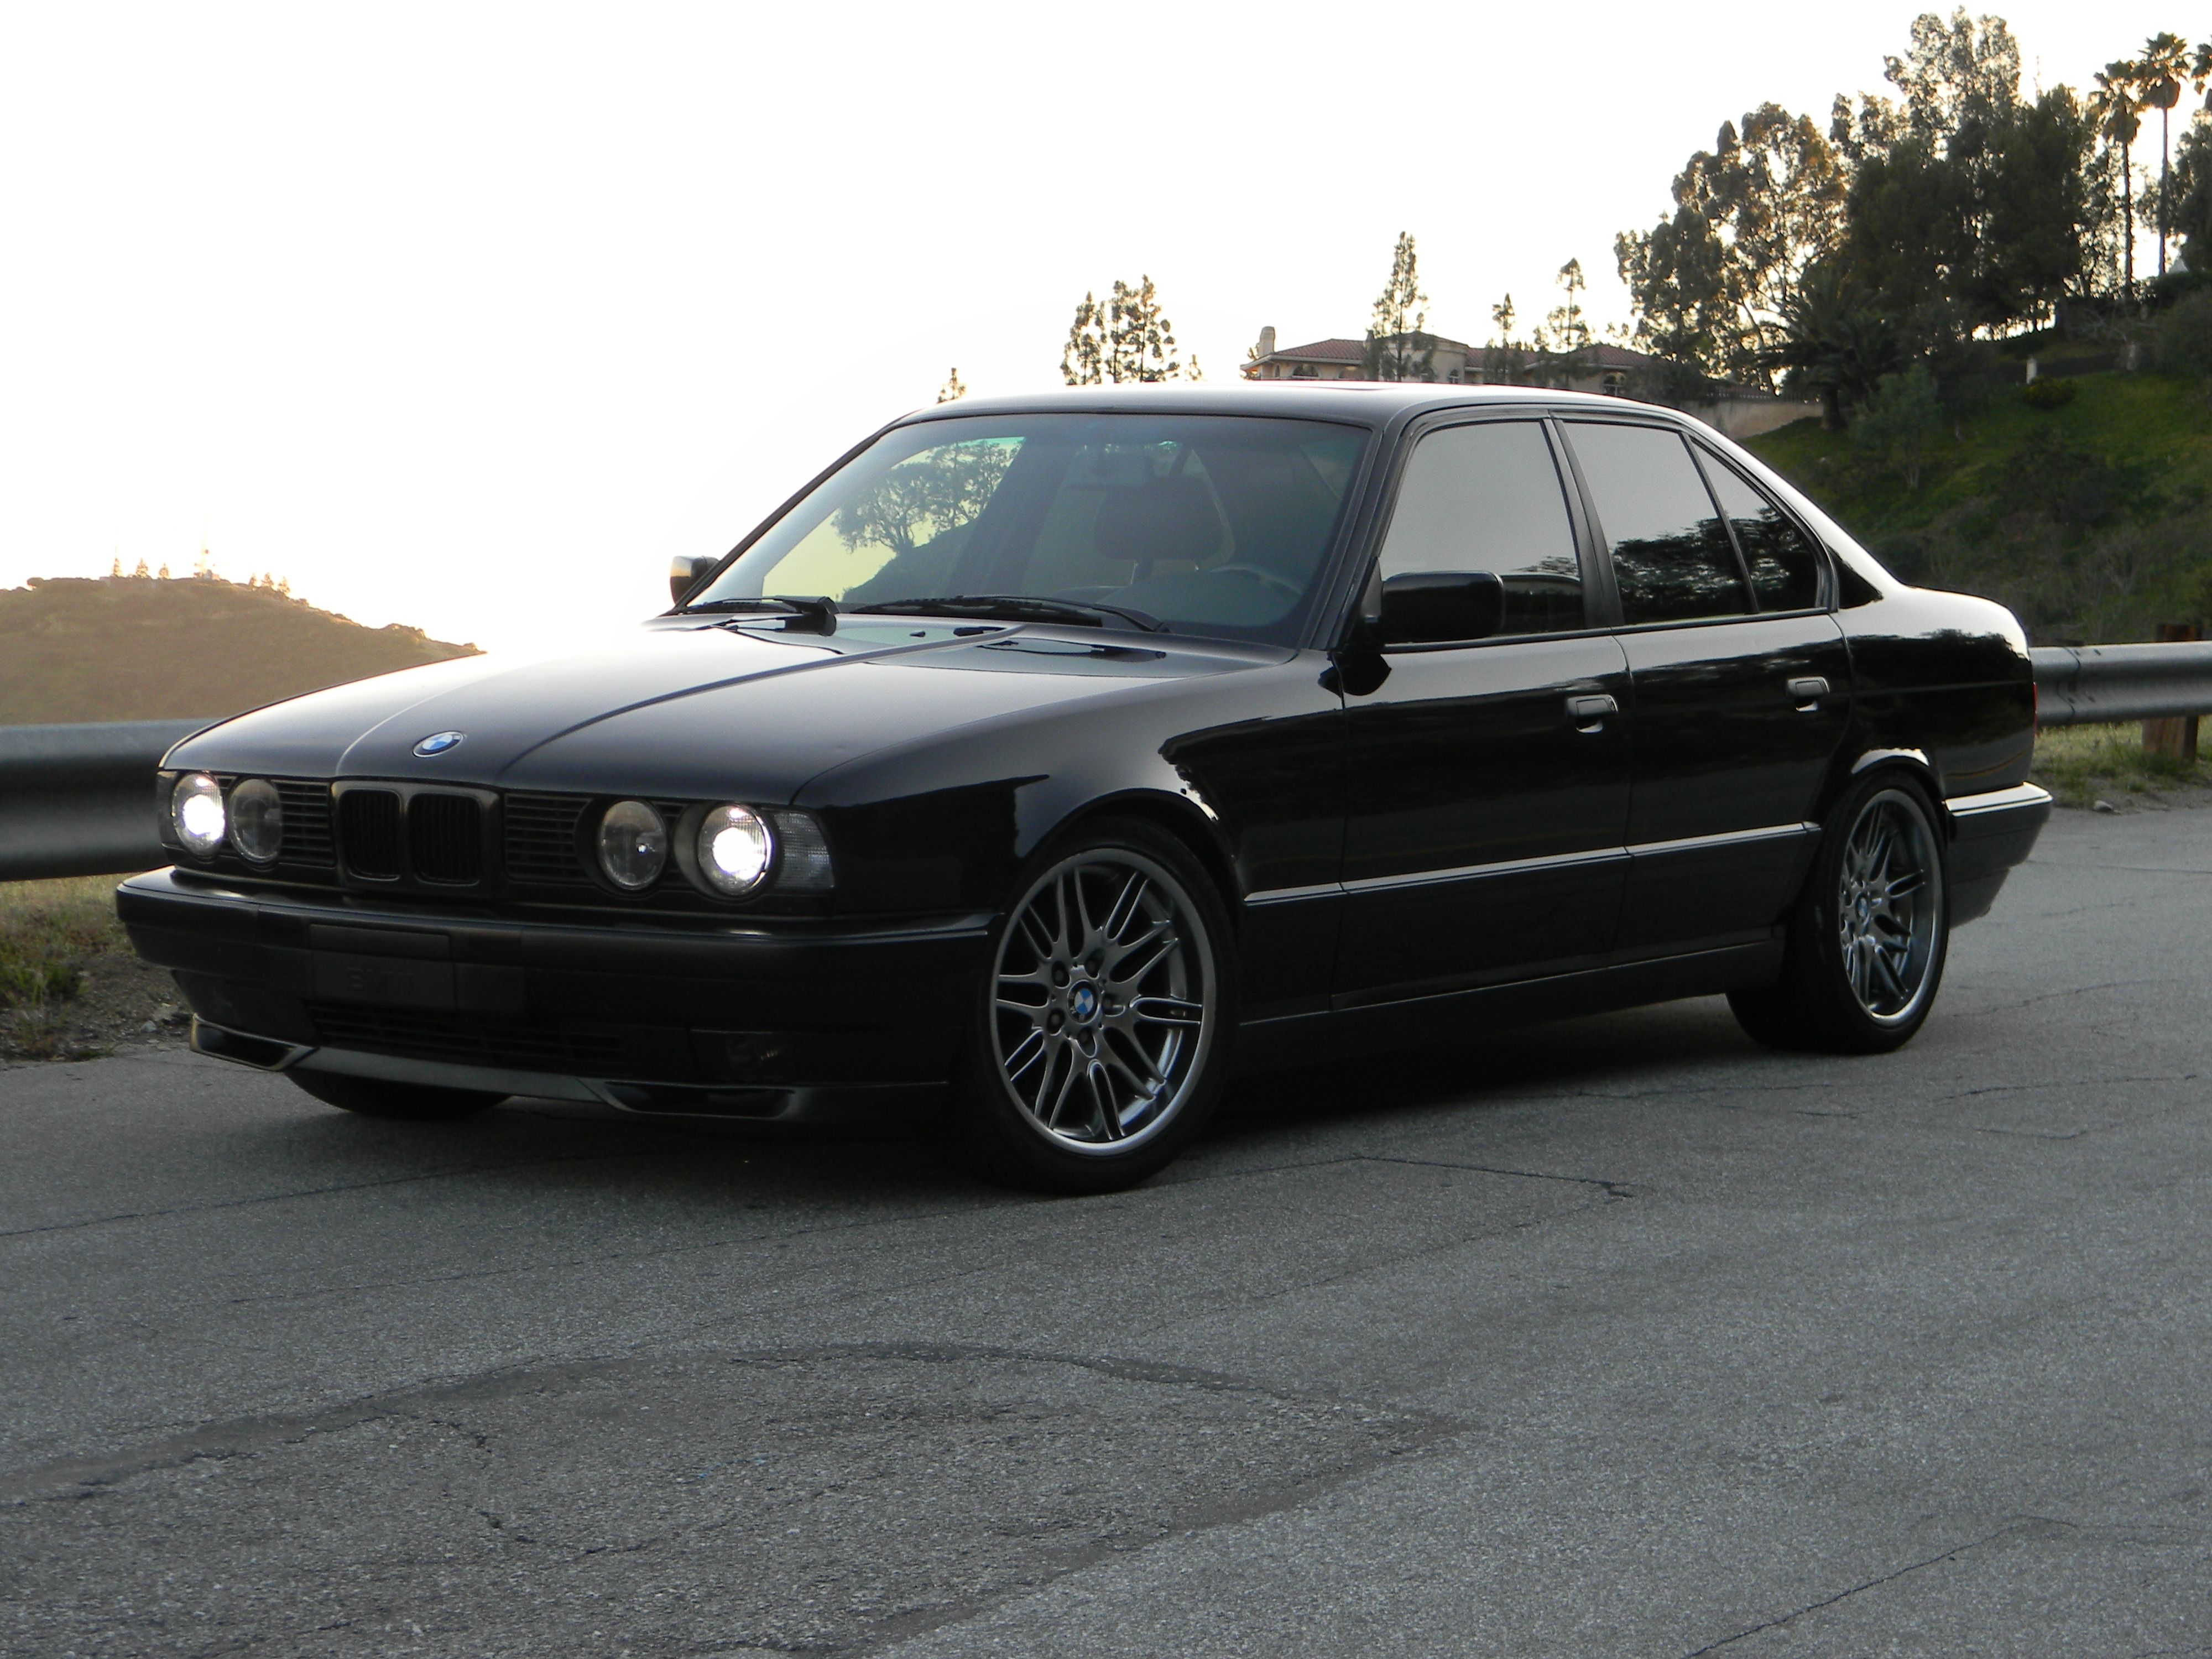 Darren S Turbo E34 Pic Intensive R3vlimited Forums